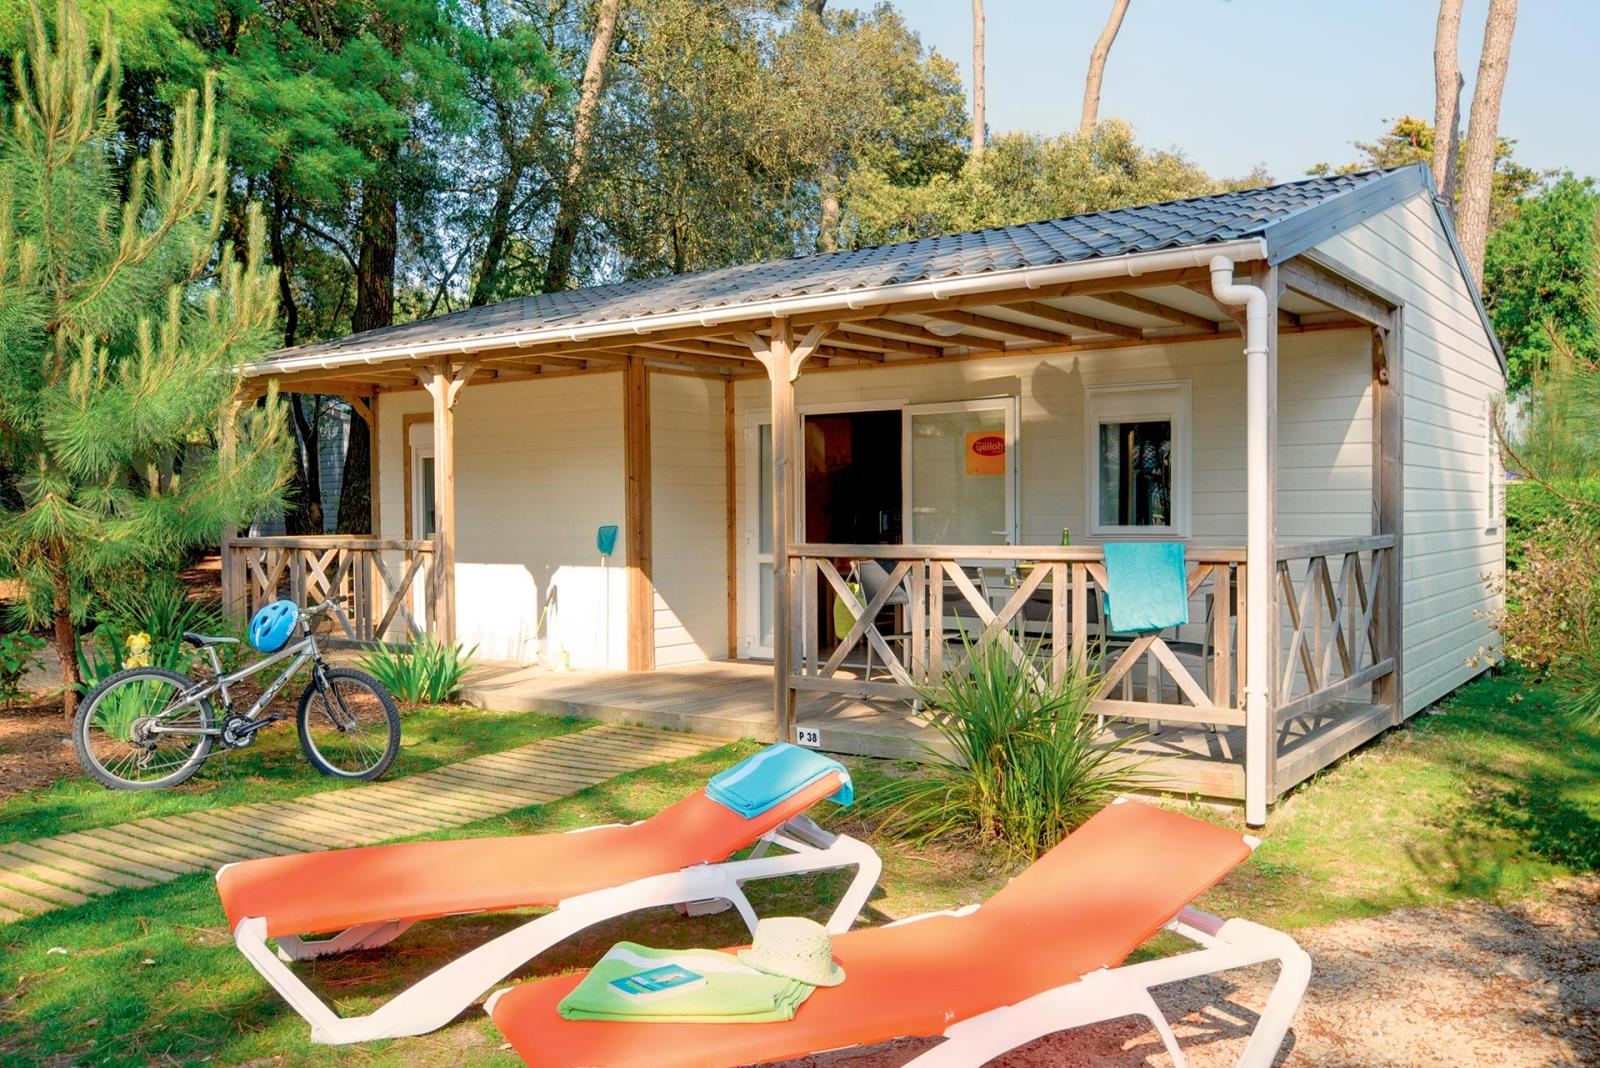 Location - Chalet Les Pins 3 Chambres **** - Camping Sandaya Le Littoral